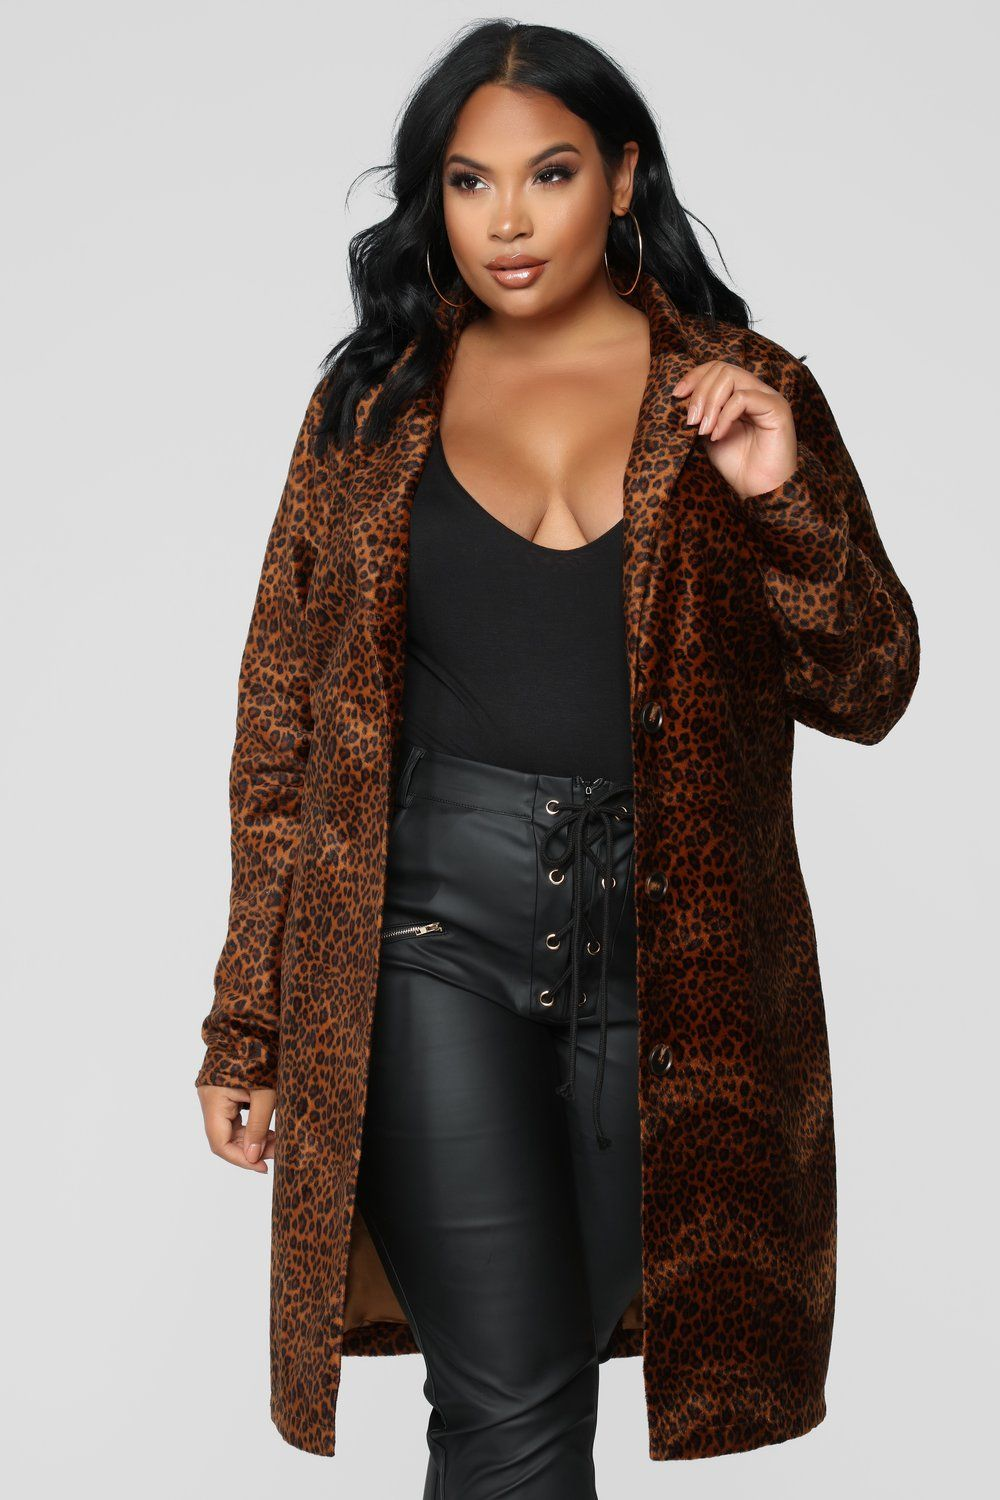 Roar Around Faux Fur Coat Brown Brown faux fur coat